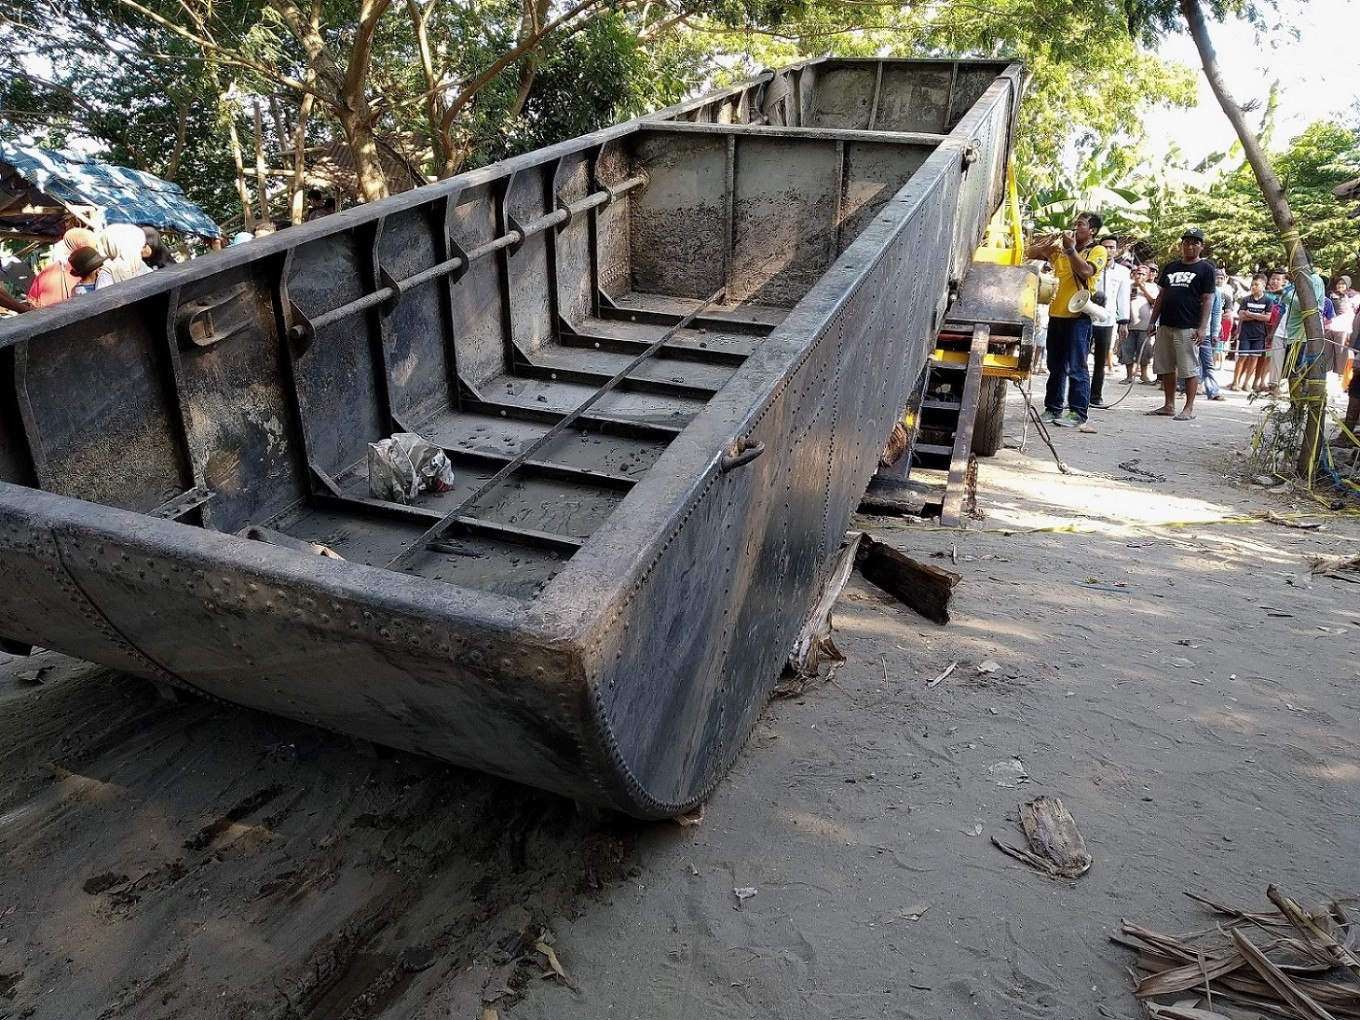 Relics from World War II recovered from Bengawan Solo River